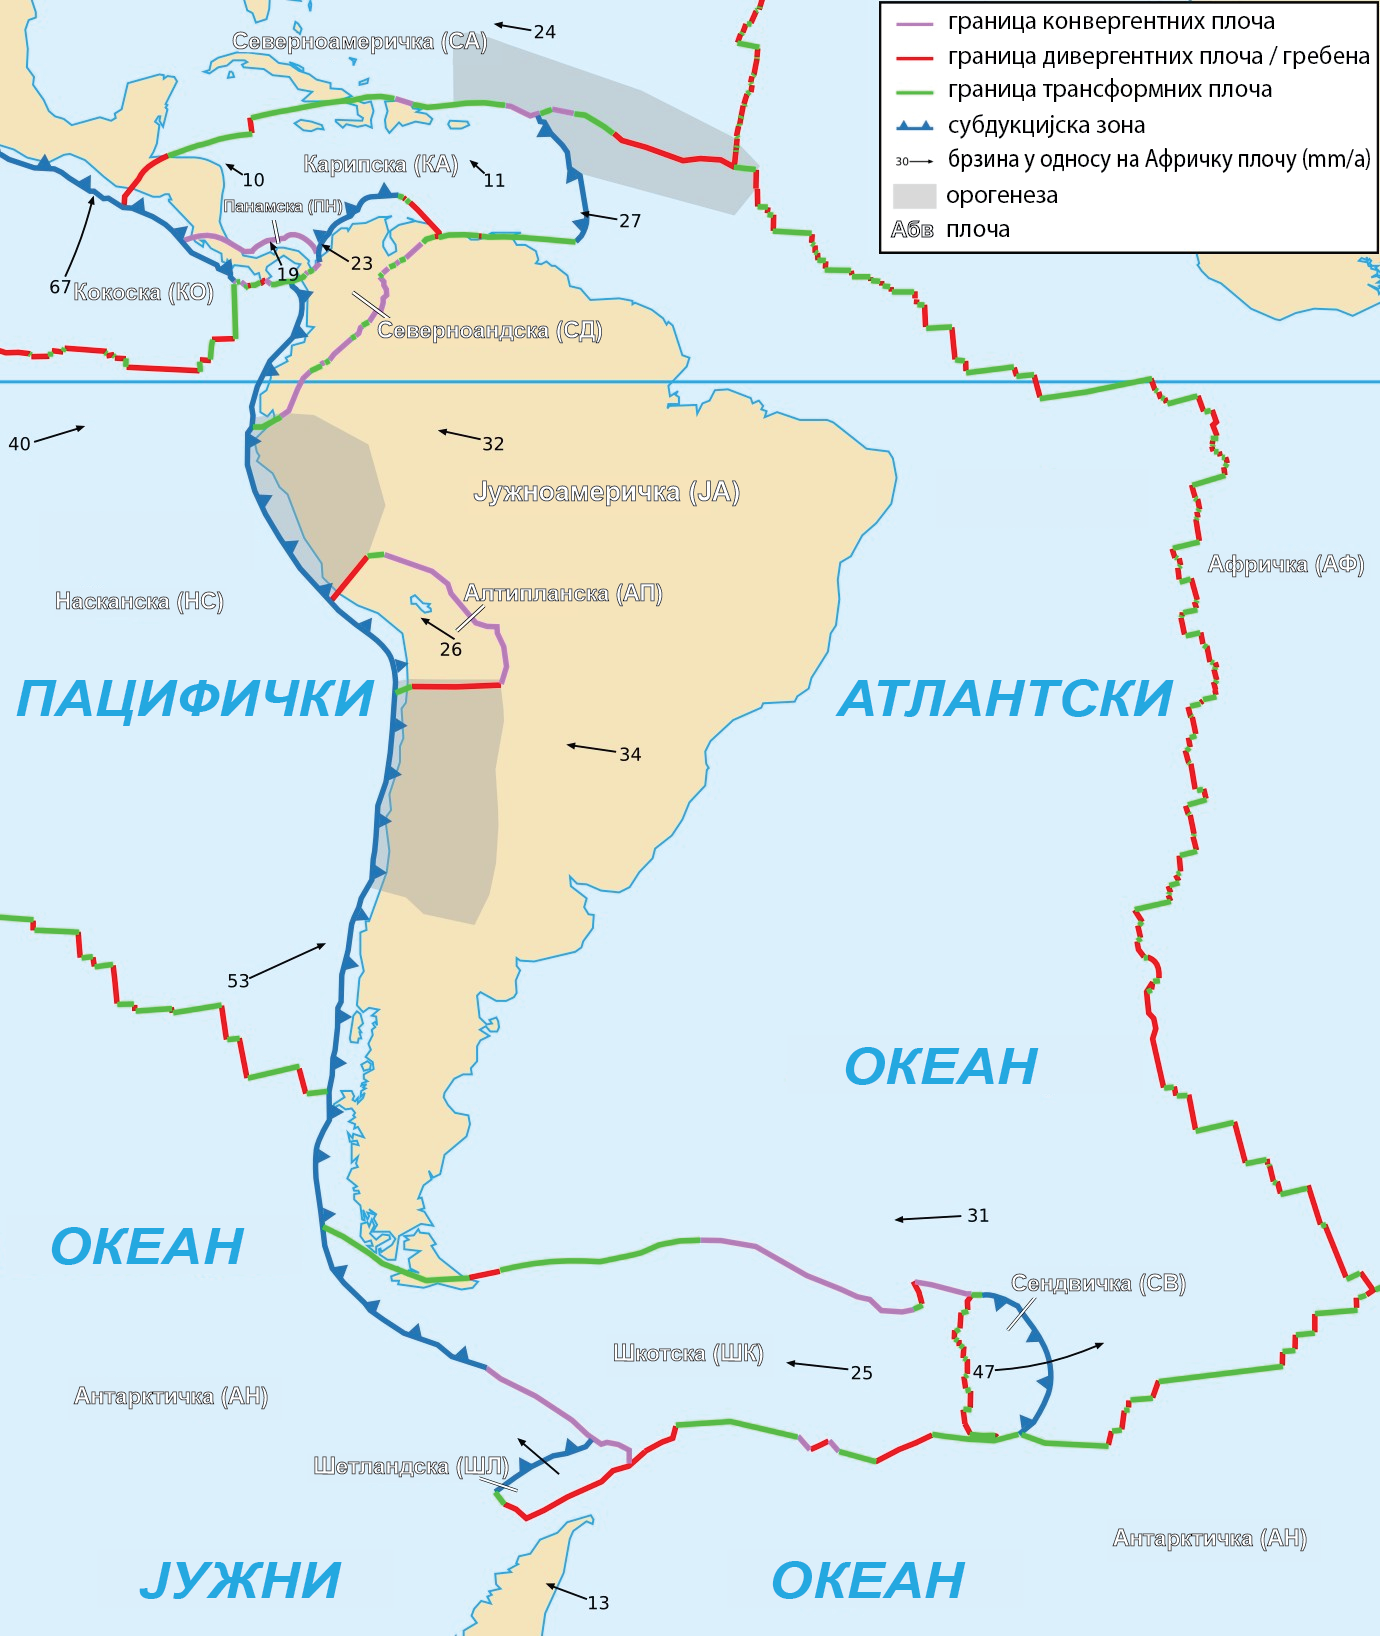 File:South American Plate map-sr.png - Wikimedia Commons